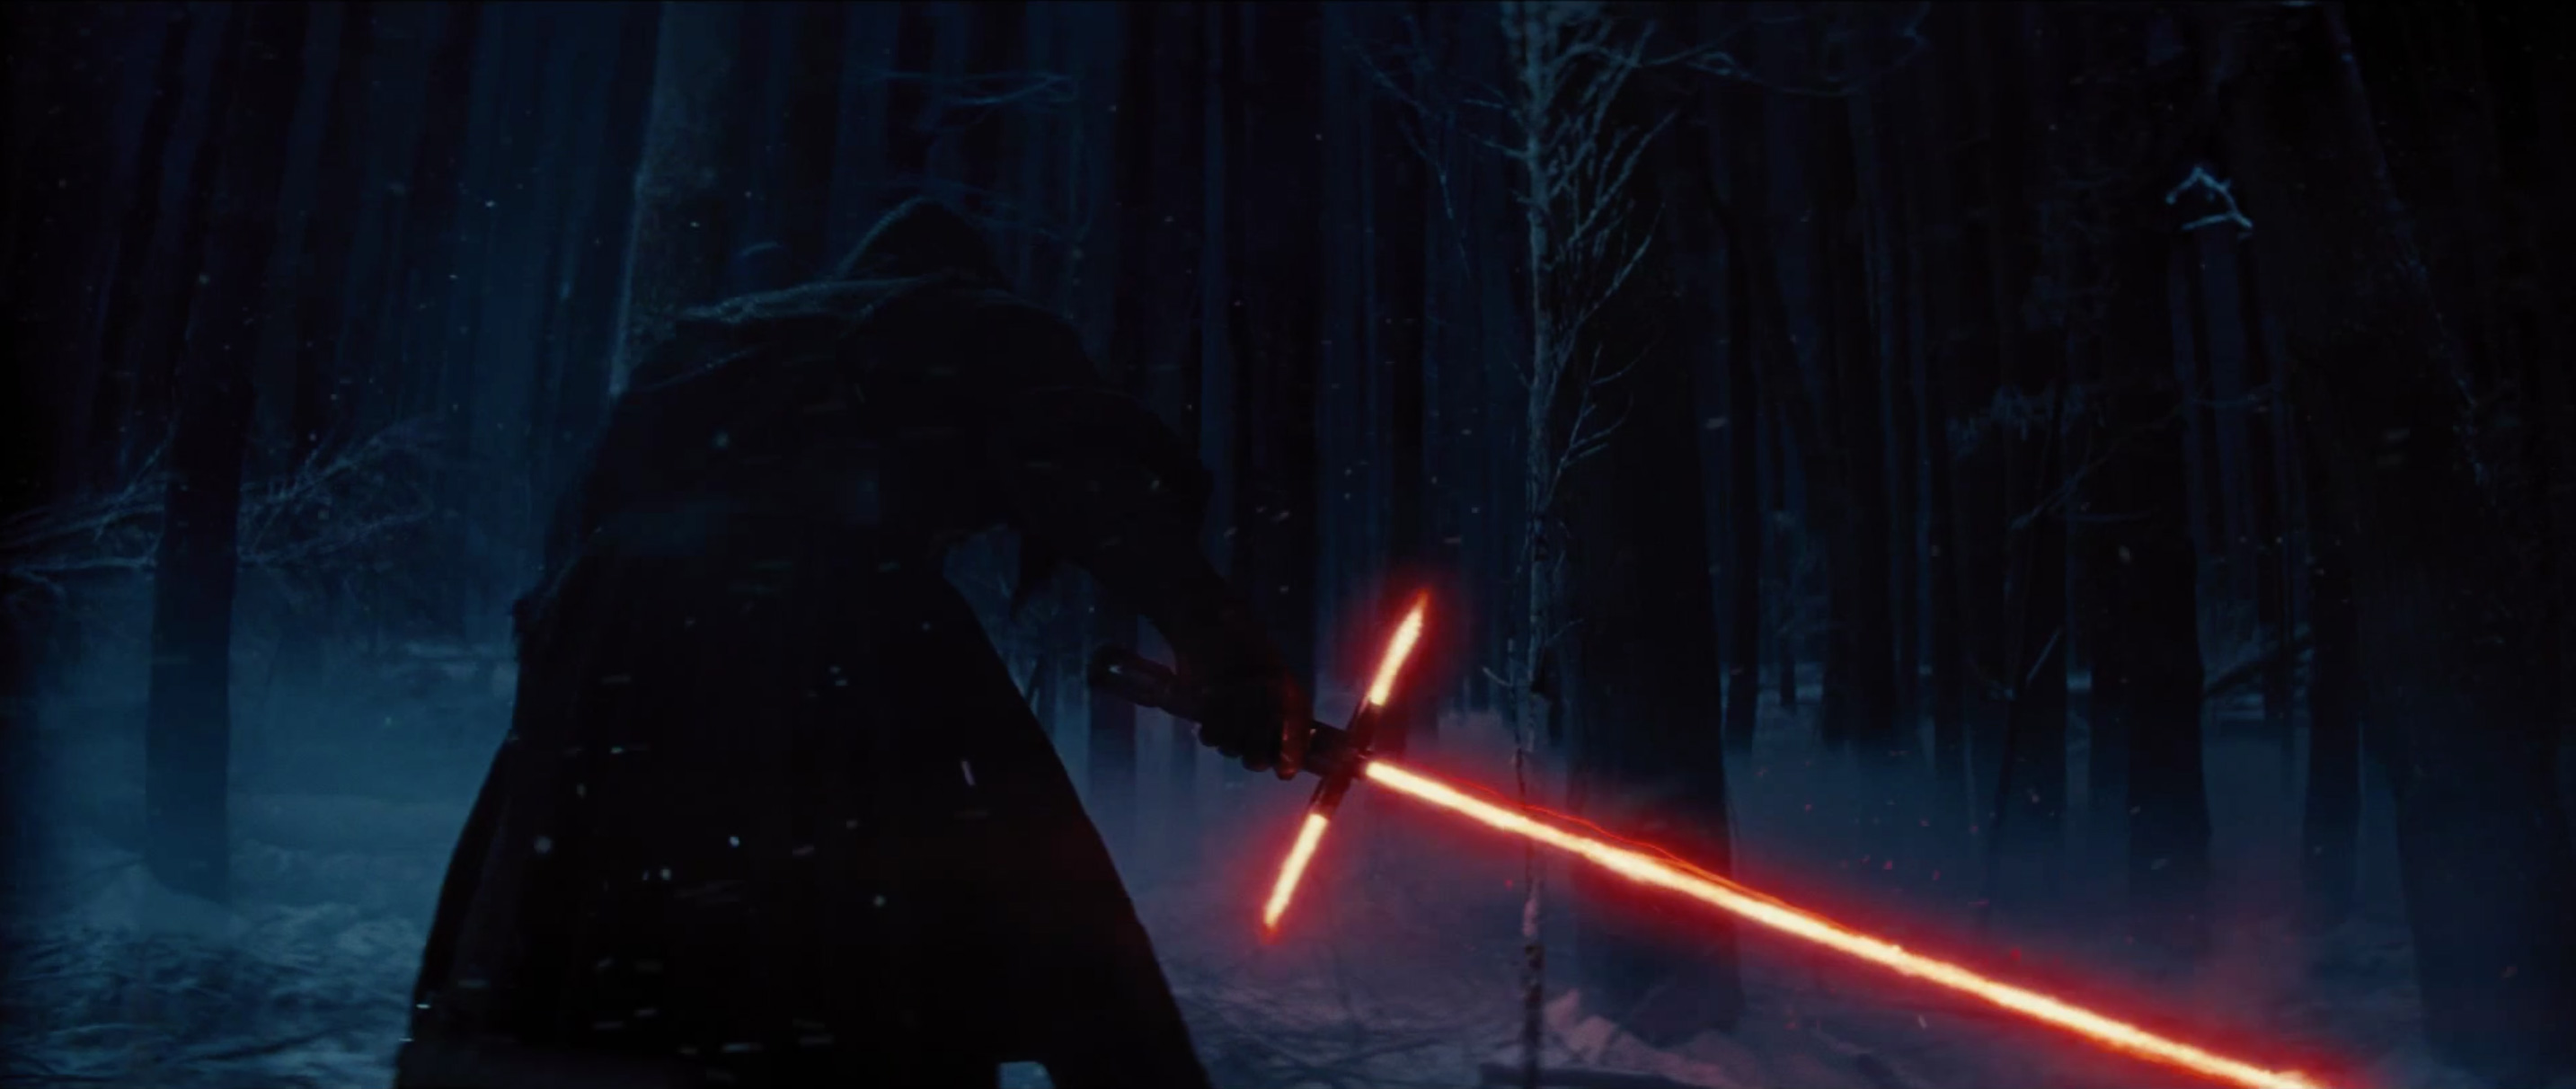 First Star Wars: Episode 7 Trailer – The Force Has ... - photo#31